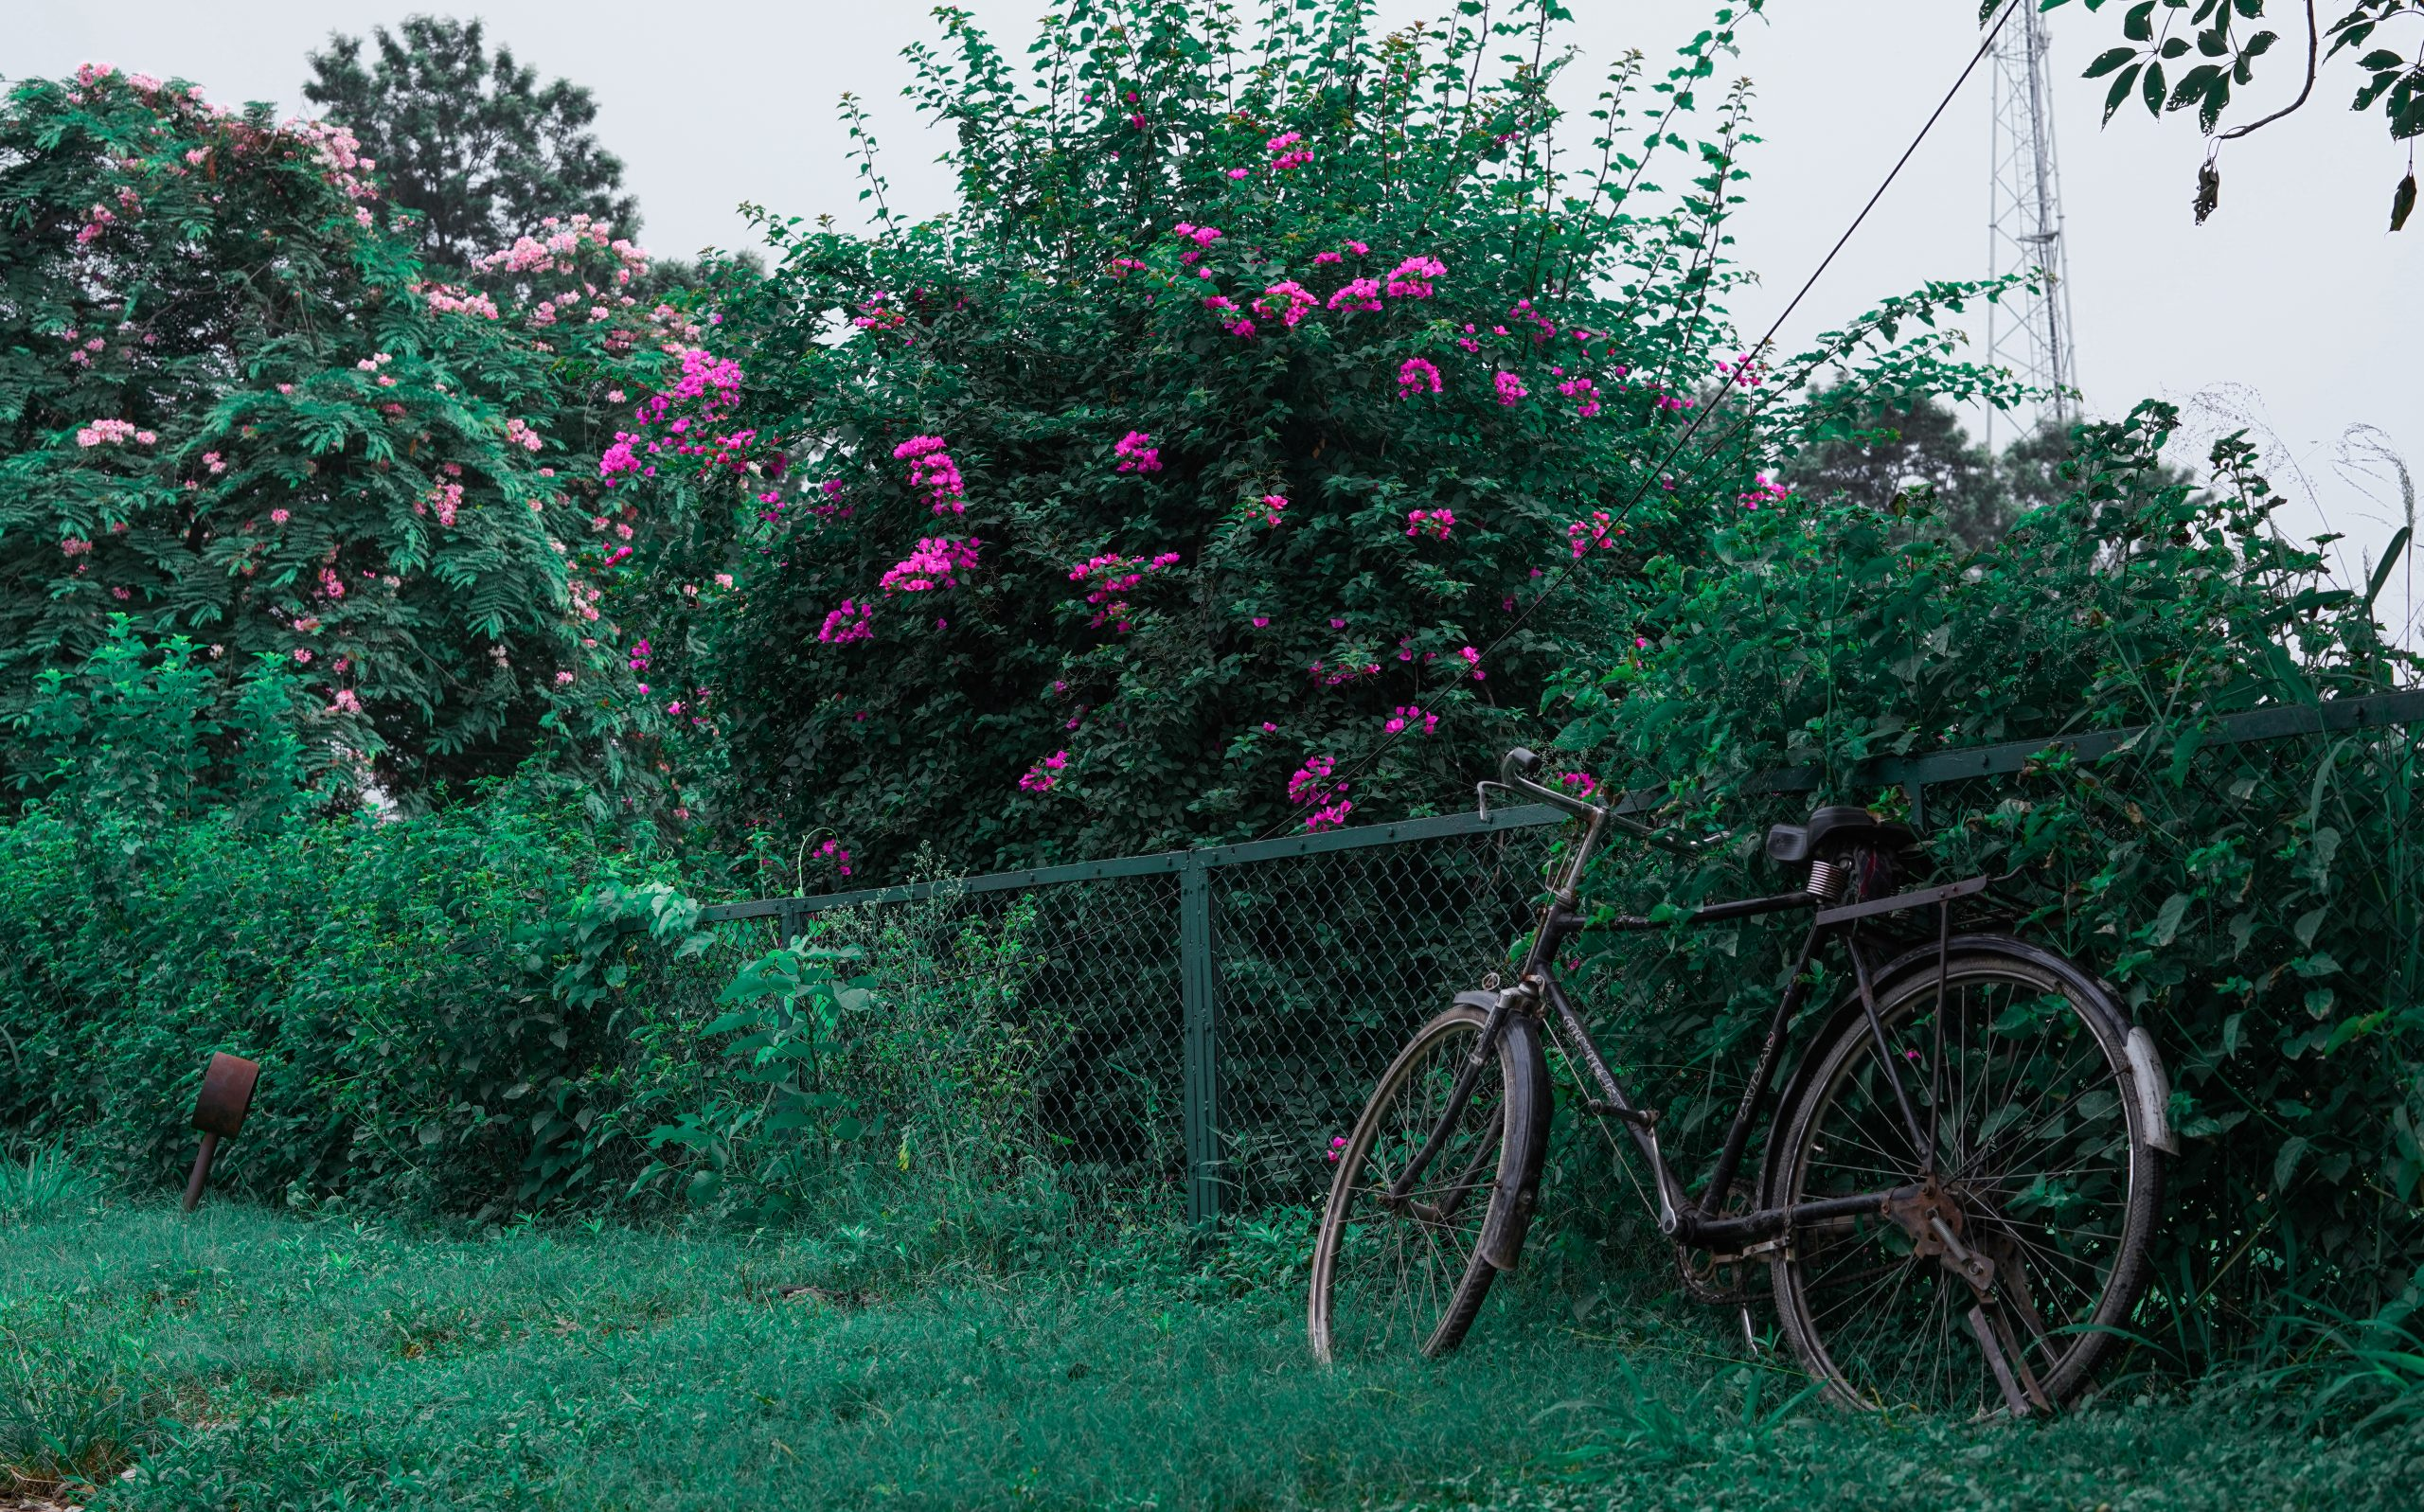 Bicyle Parked in the Garden